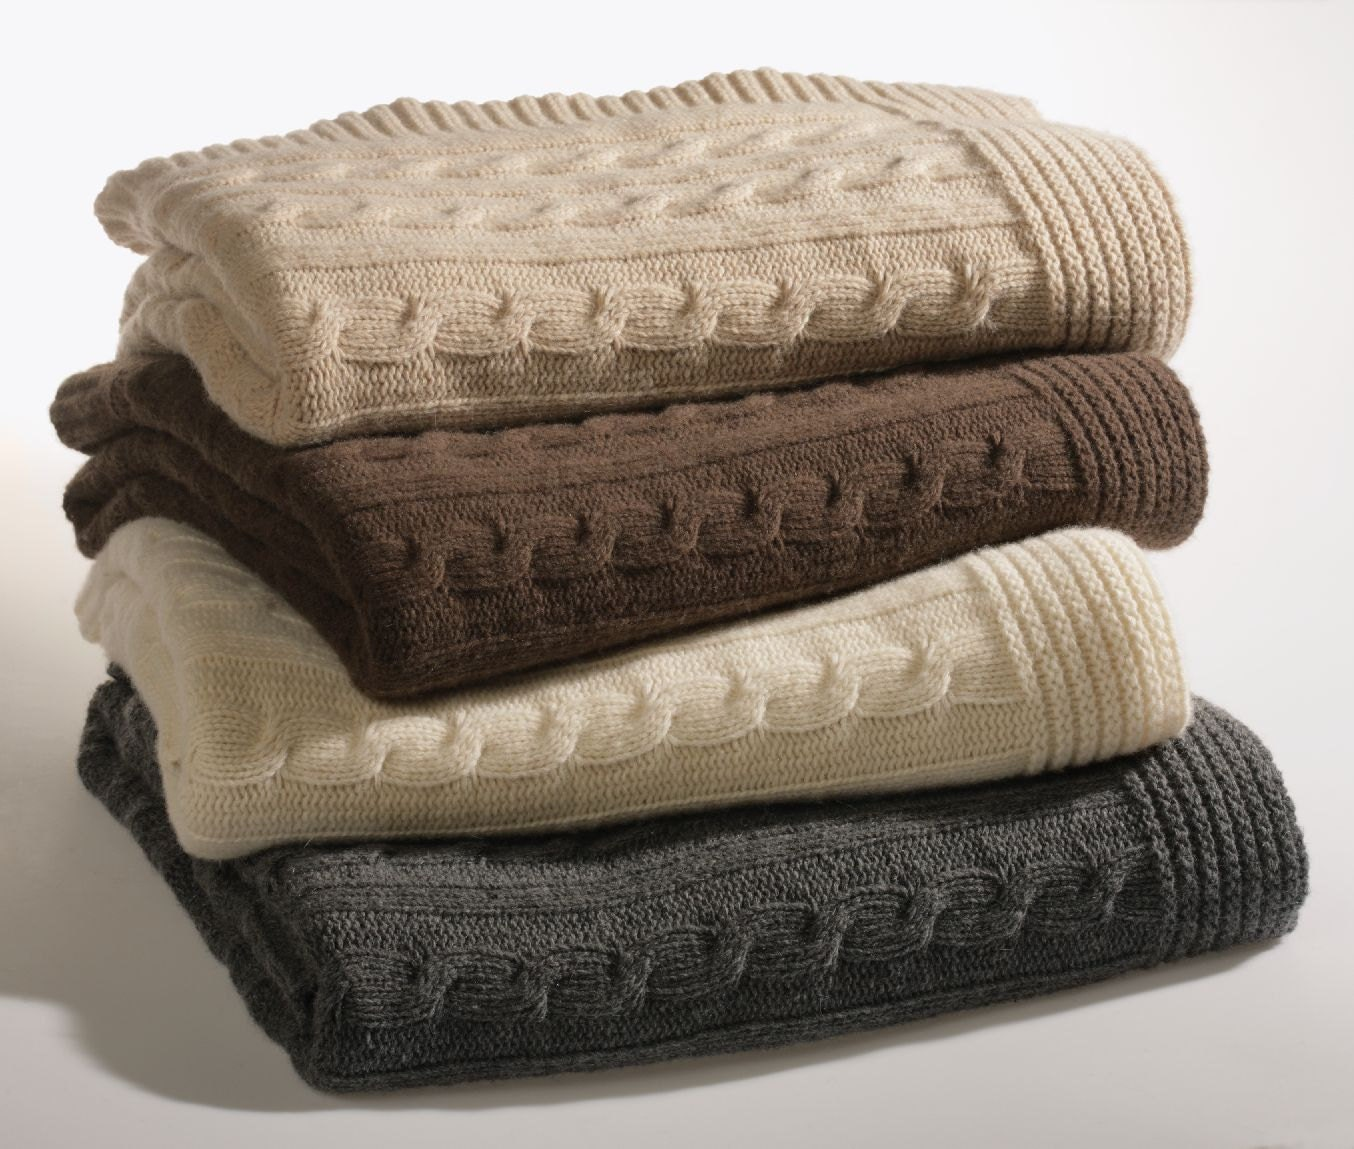 Knitting Pattern Queen Size Blanket : KNITTED Queen Size Winter Bed Blanket Cashmere and wool with